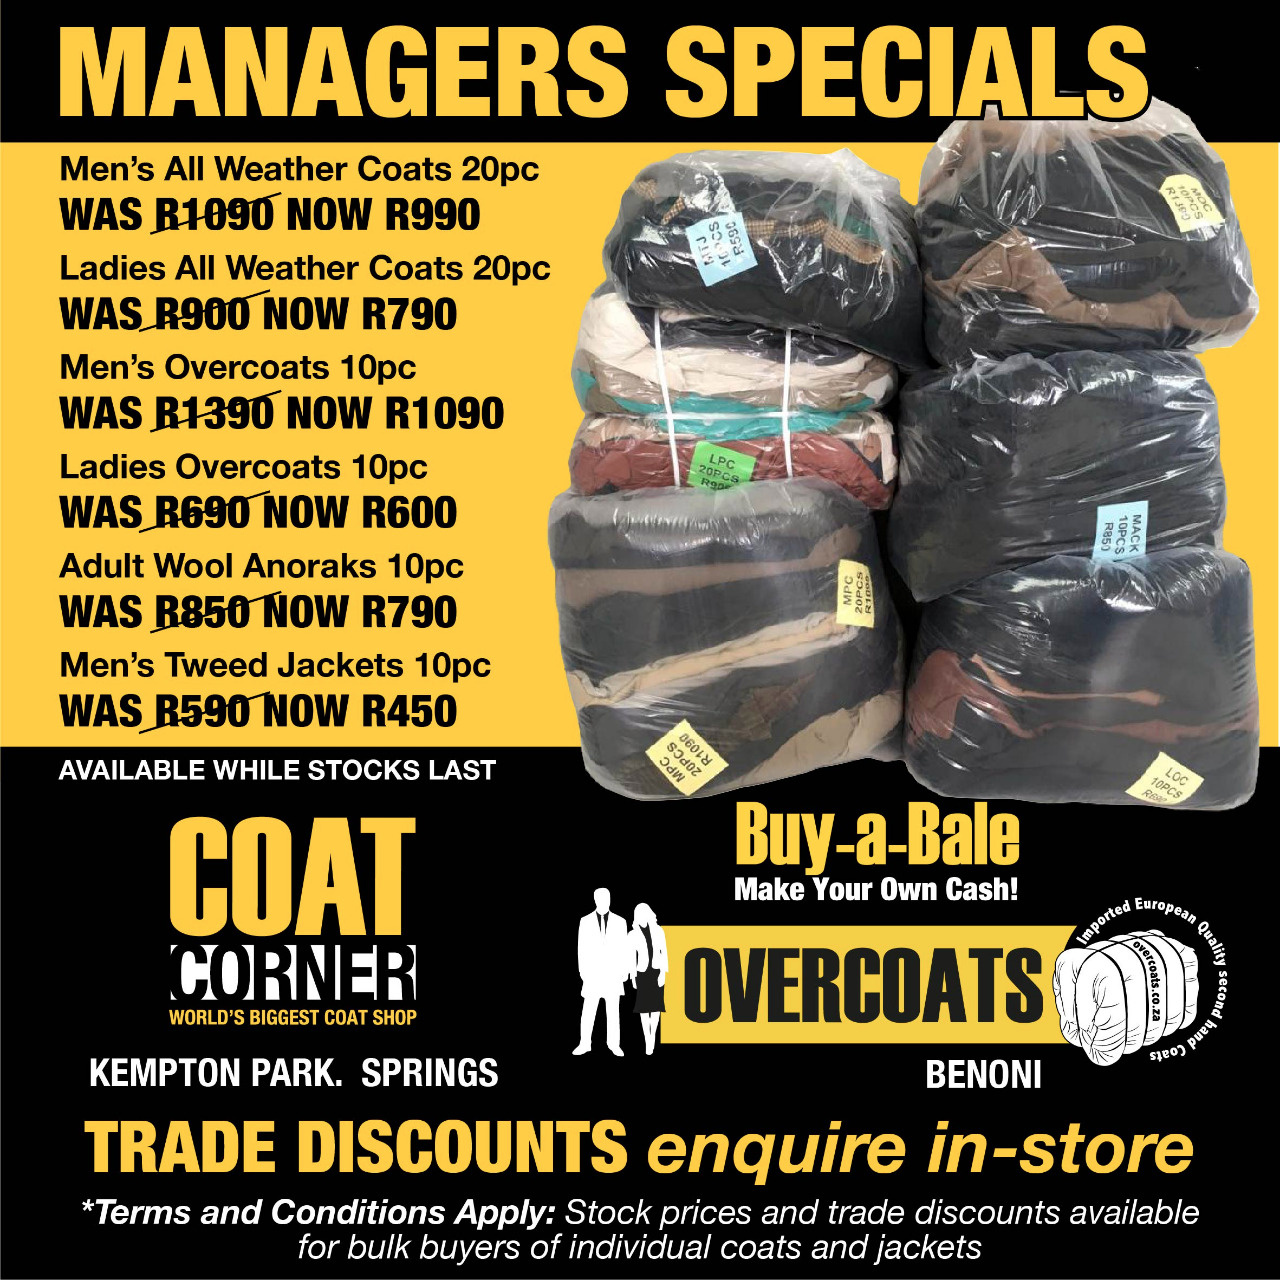 Buy Bales from R450! BUY A BALE. MAKE YOUR OWN CASH.